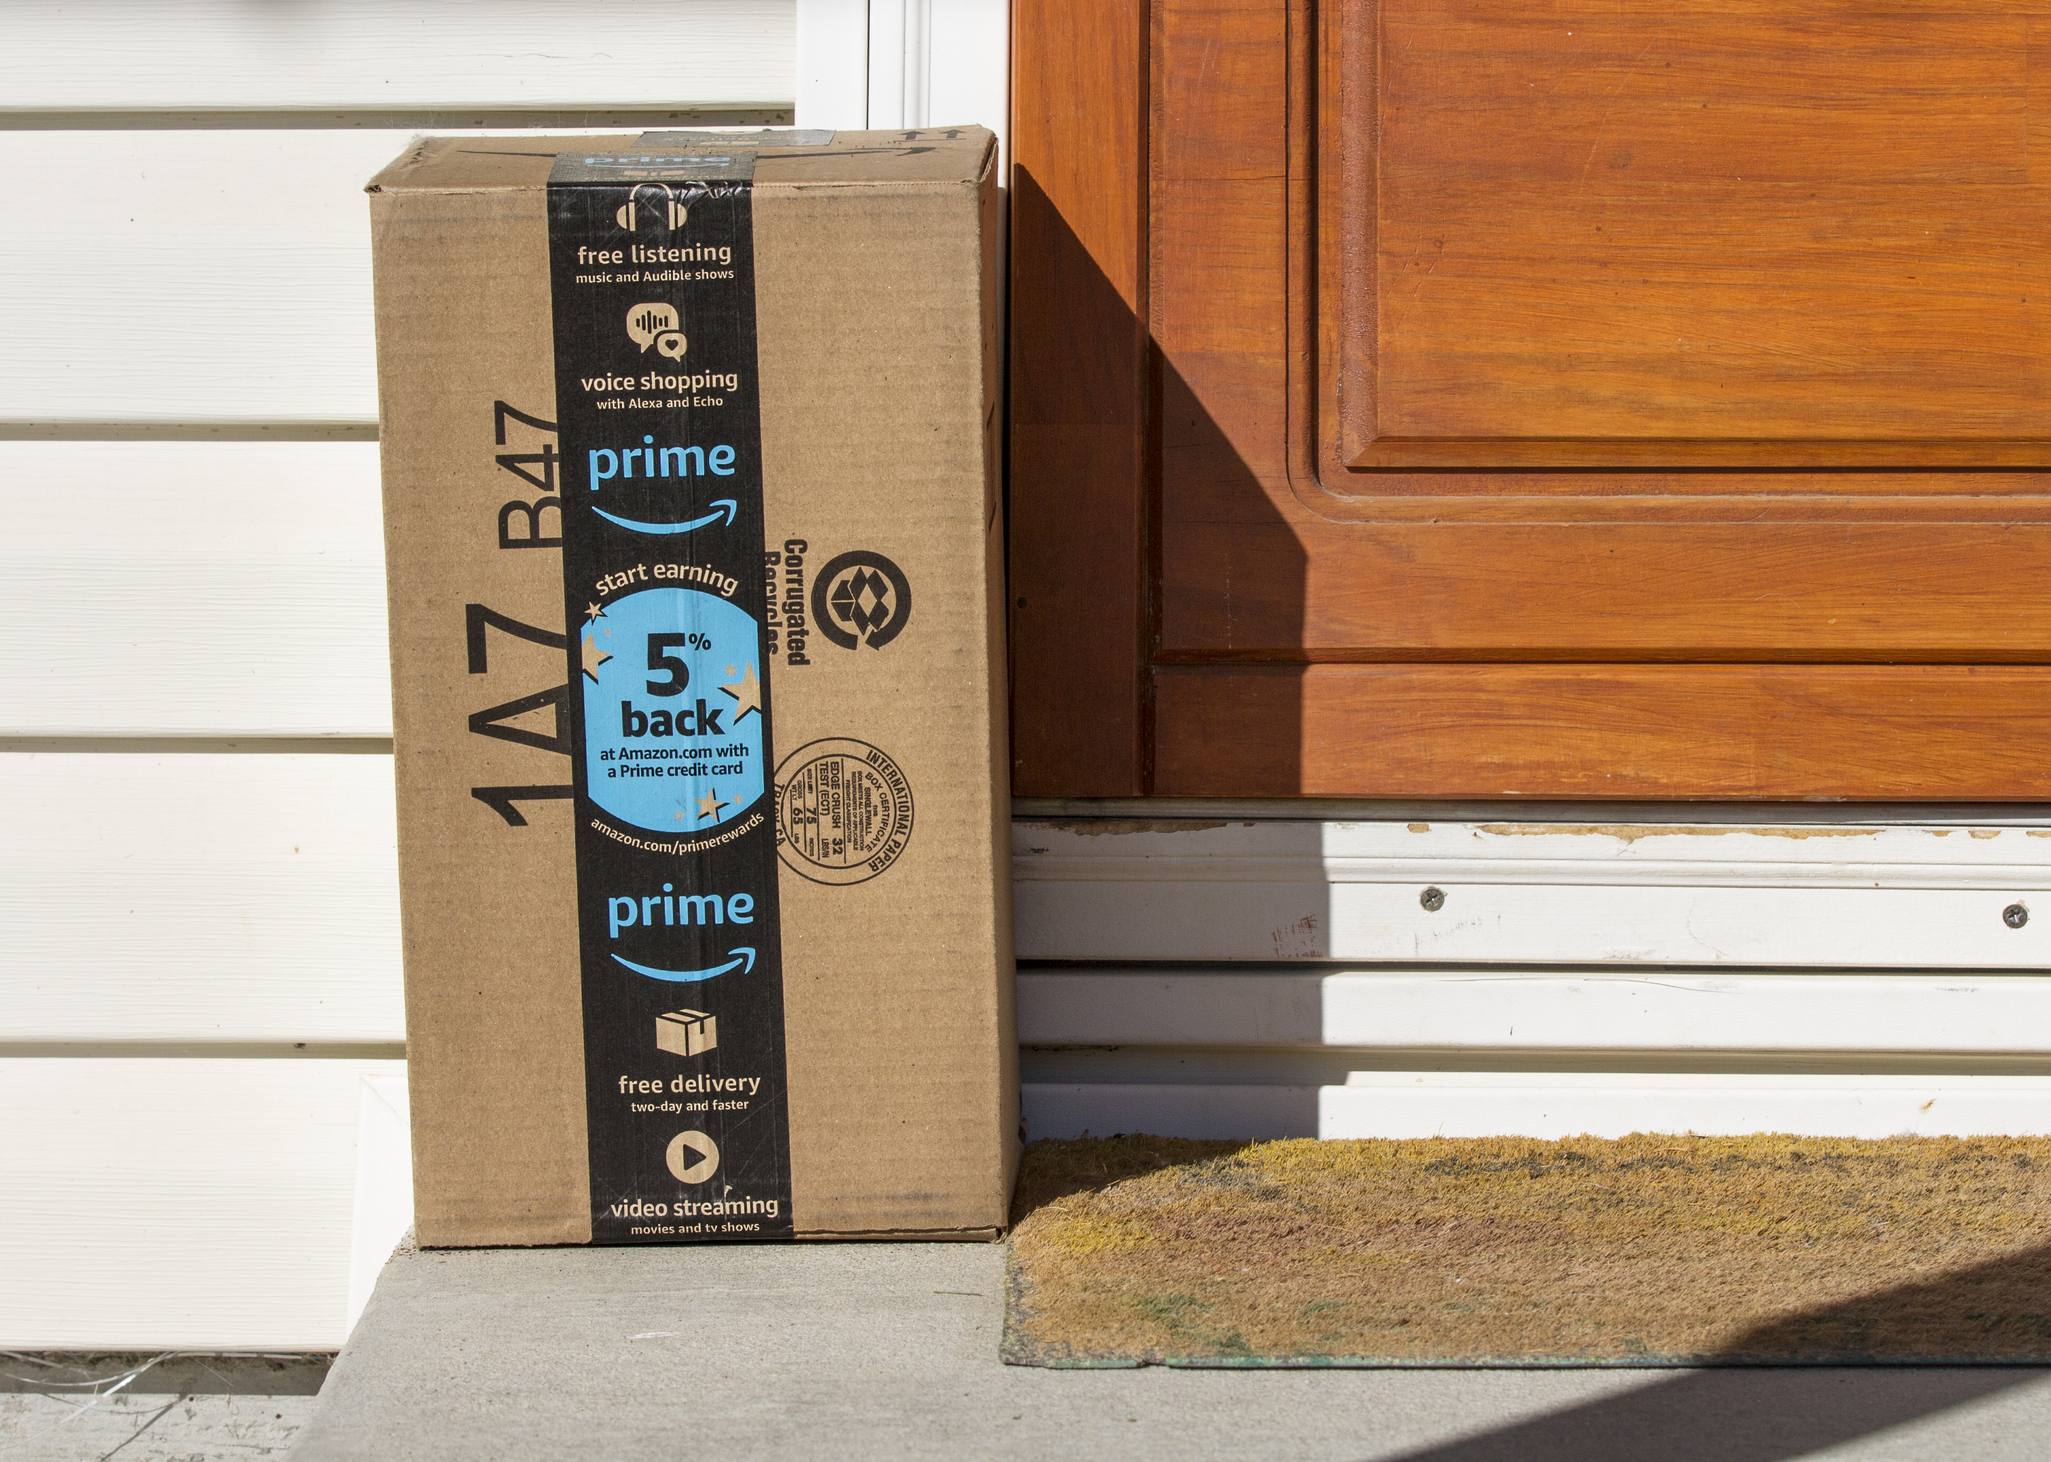 Prime box on doorstep